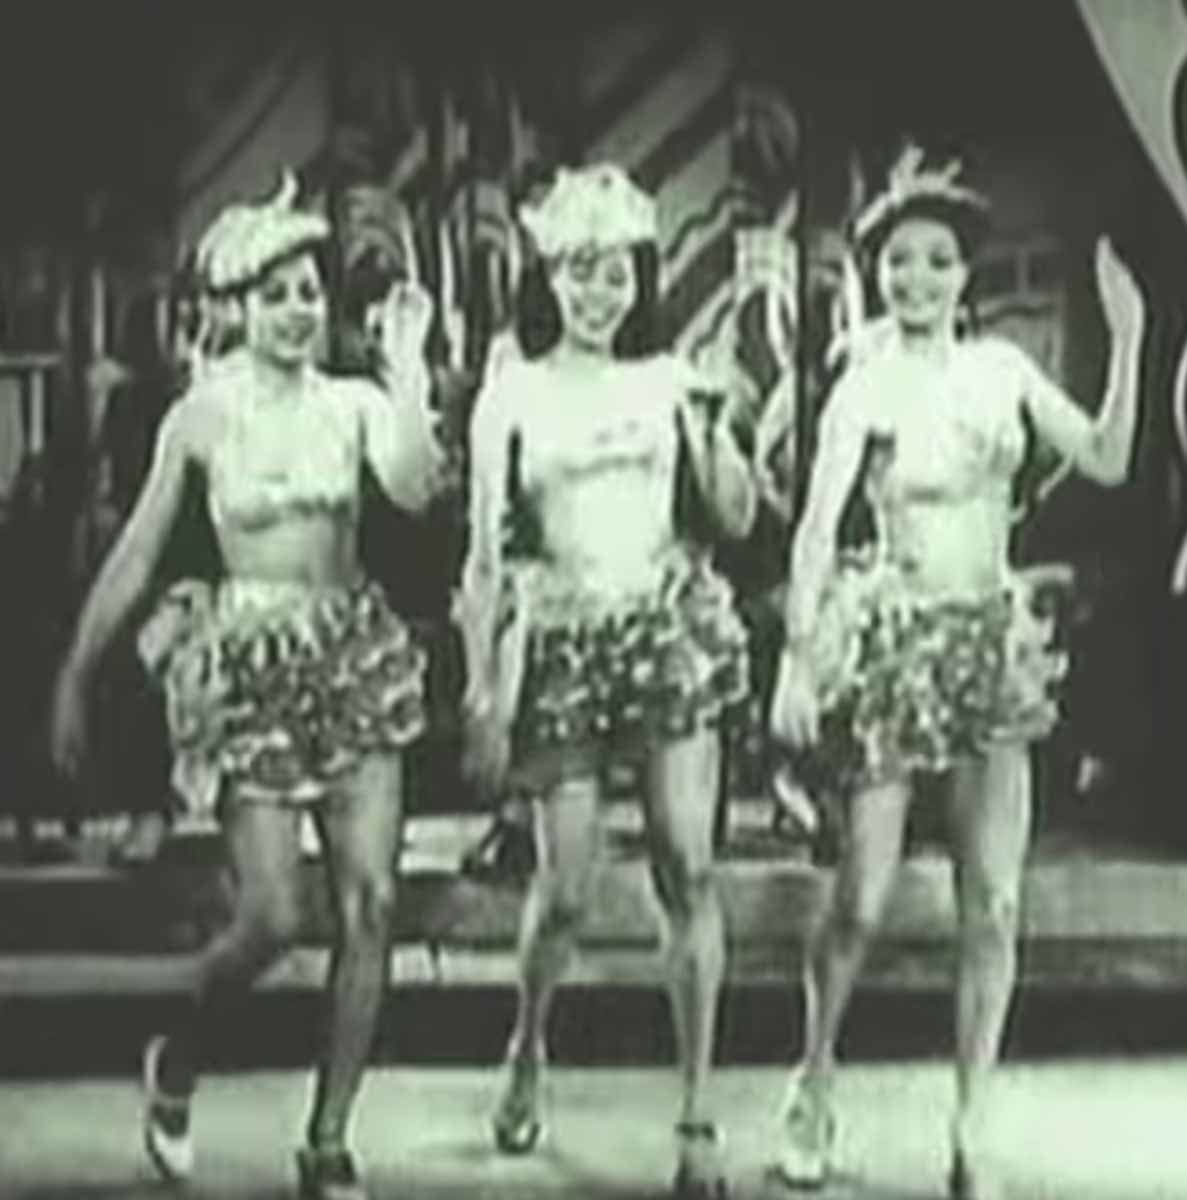 """102-year-old dancer never saw herself on film, until now 